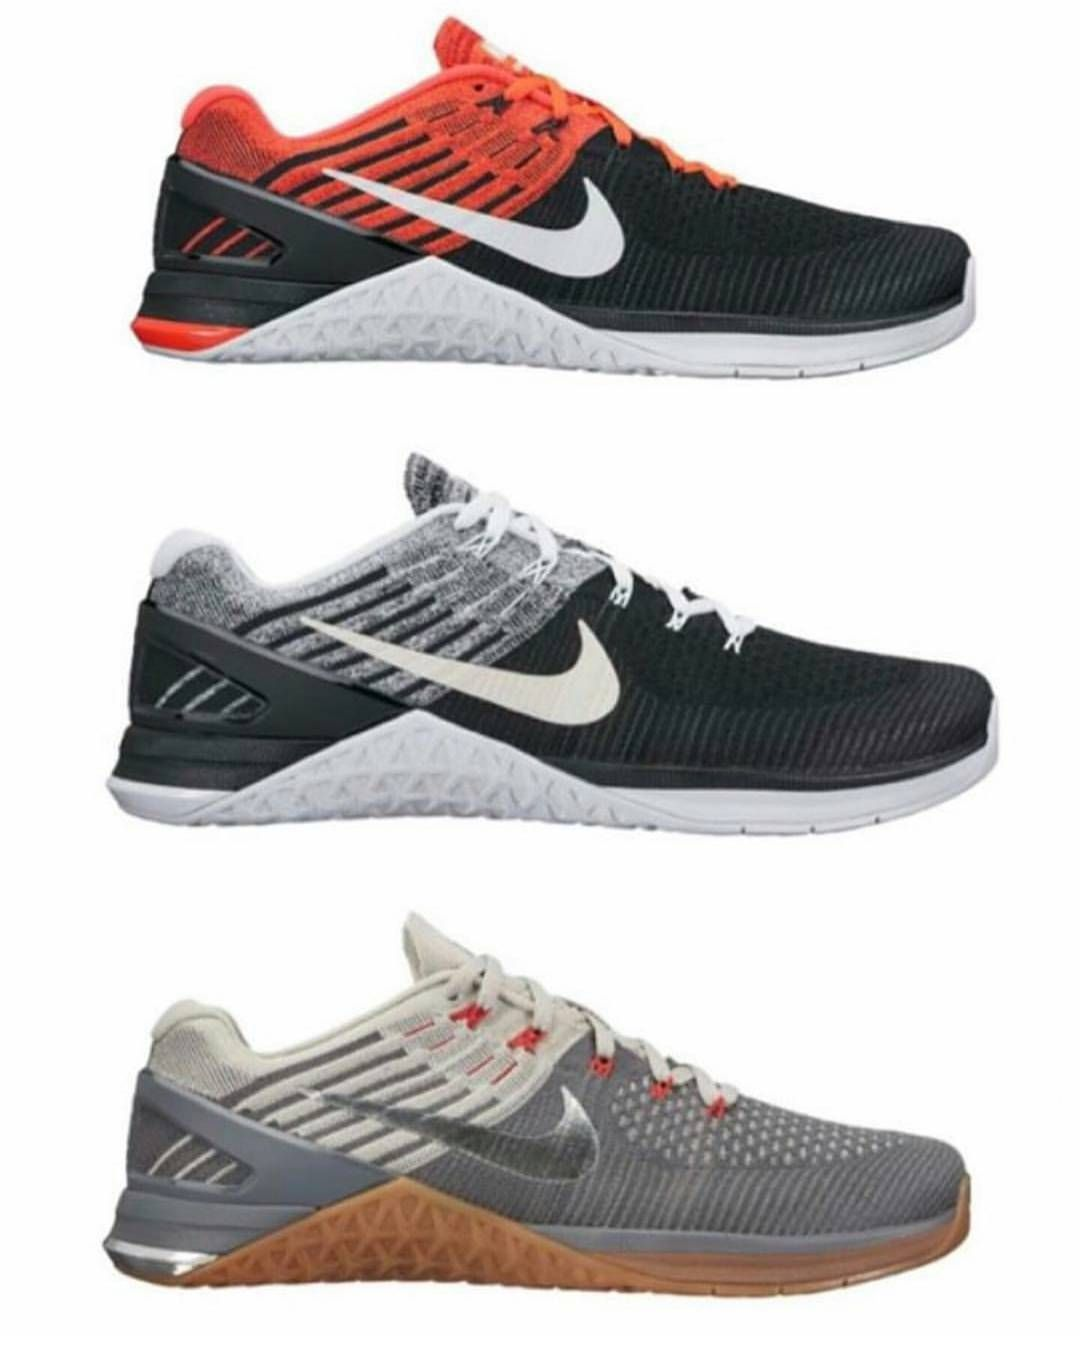 Nike Metcon 3 http://www.skinnymefat.com/paleo-diet/ | Fashion | Pinterest  | Casual styles, Gym wear and Footwear